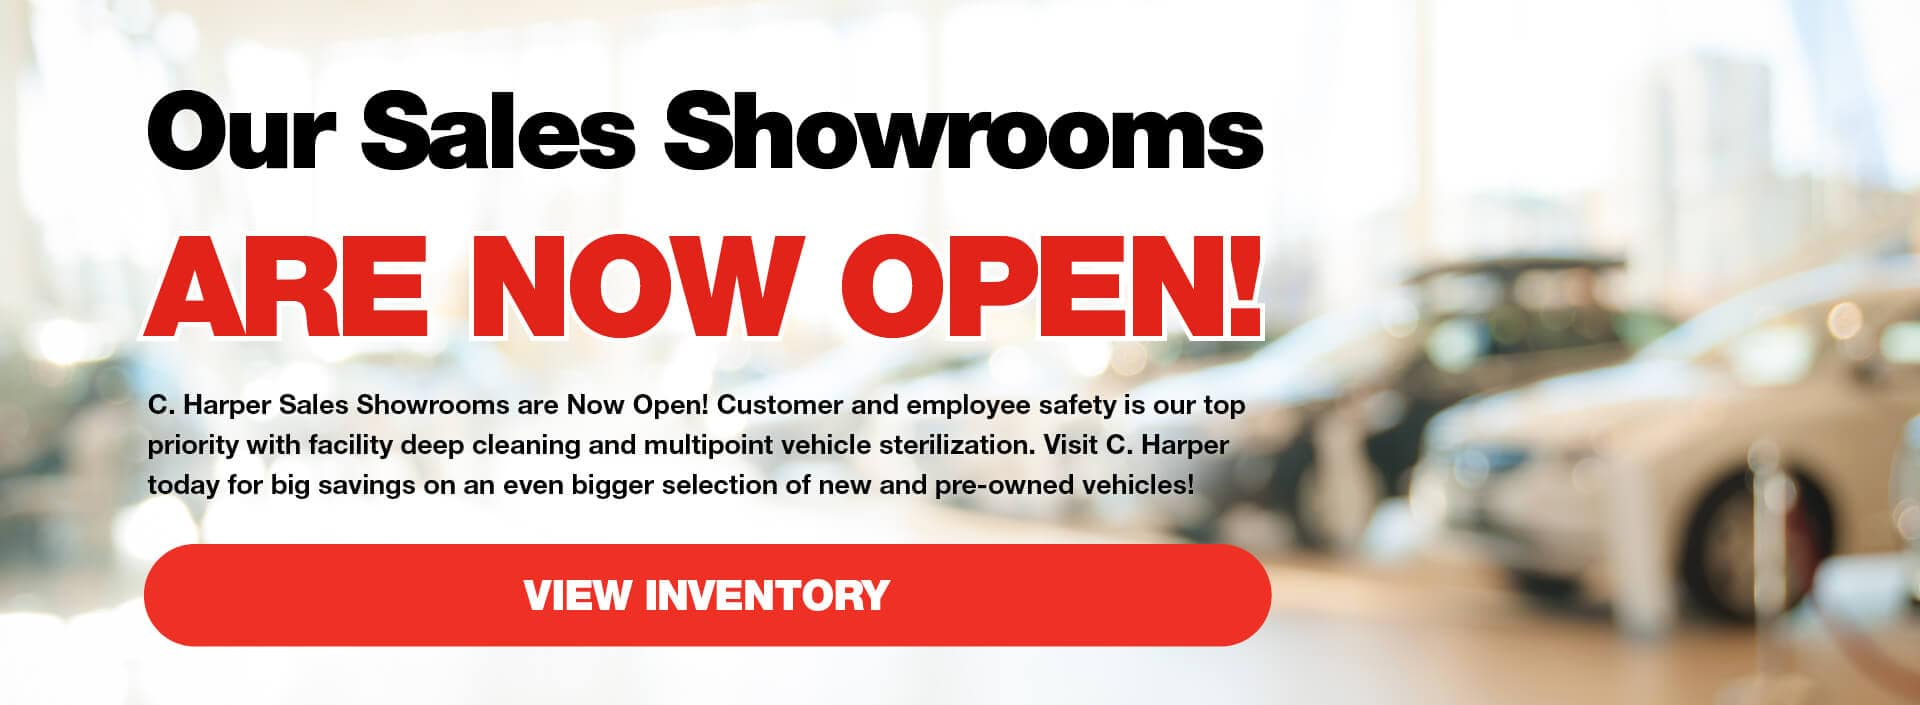 Our Sales Showrooms are now open!